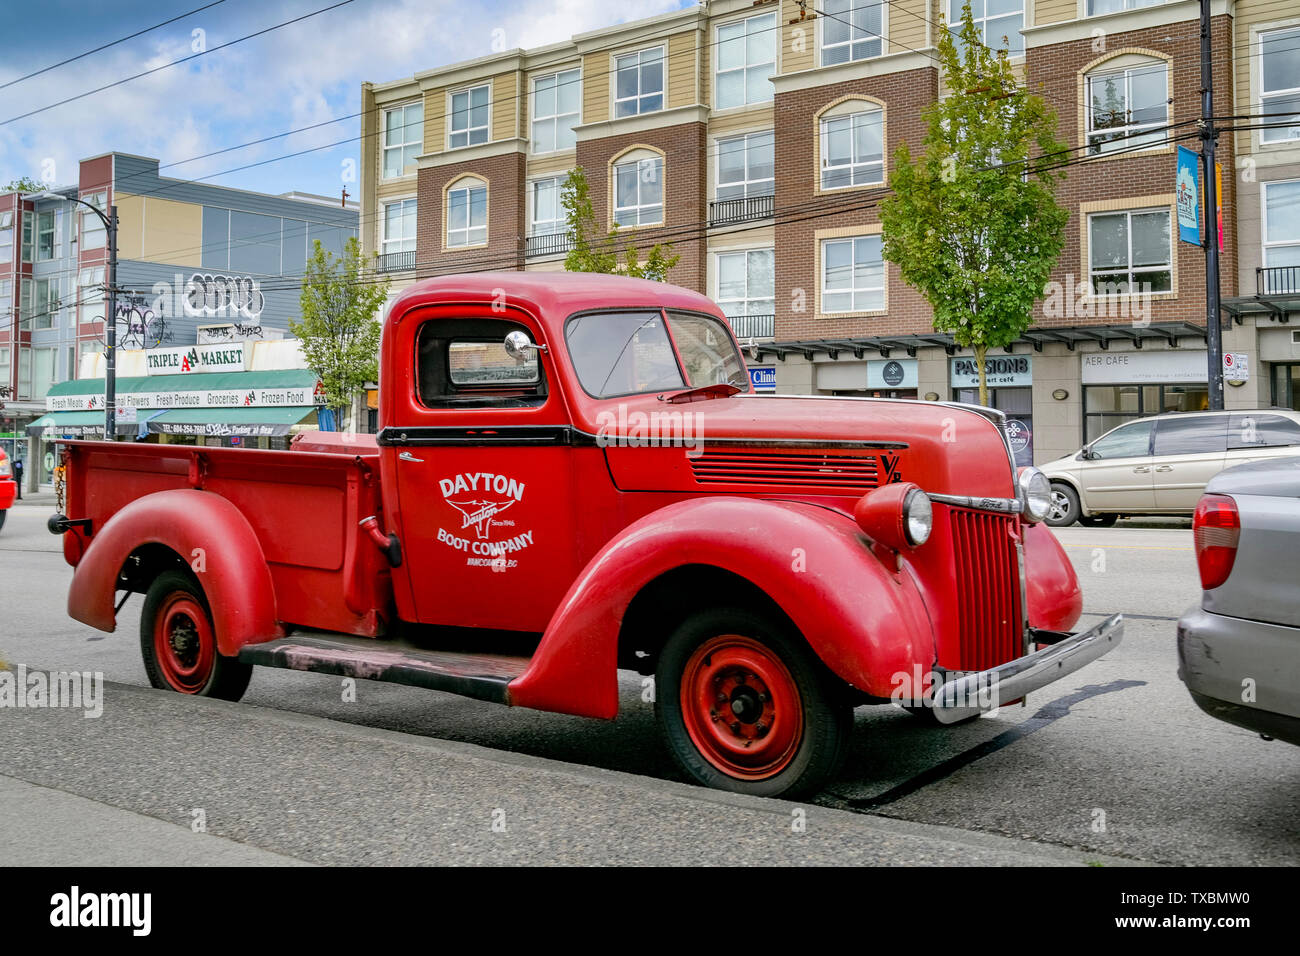 Vintage Dayton Boot Company, red pick up truck, Hastings Street, Vancouver, British Columbia, Canada - Stock Image